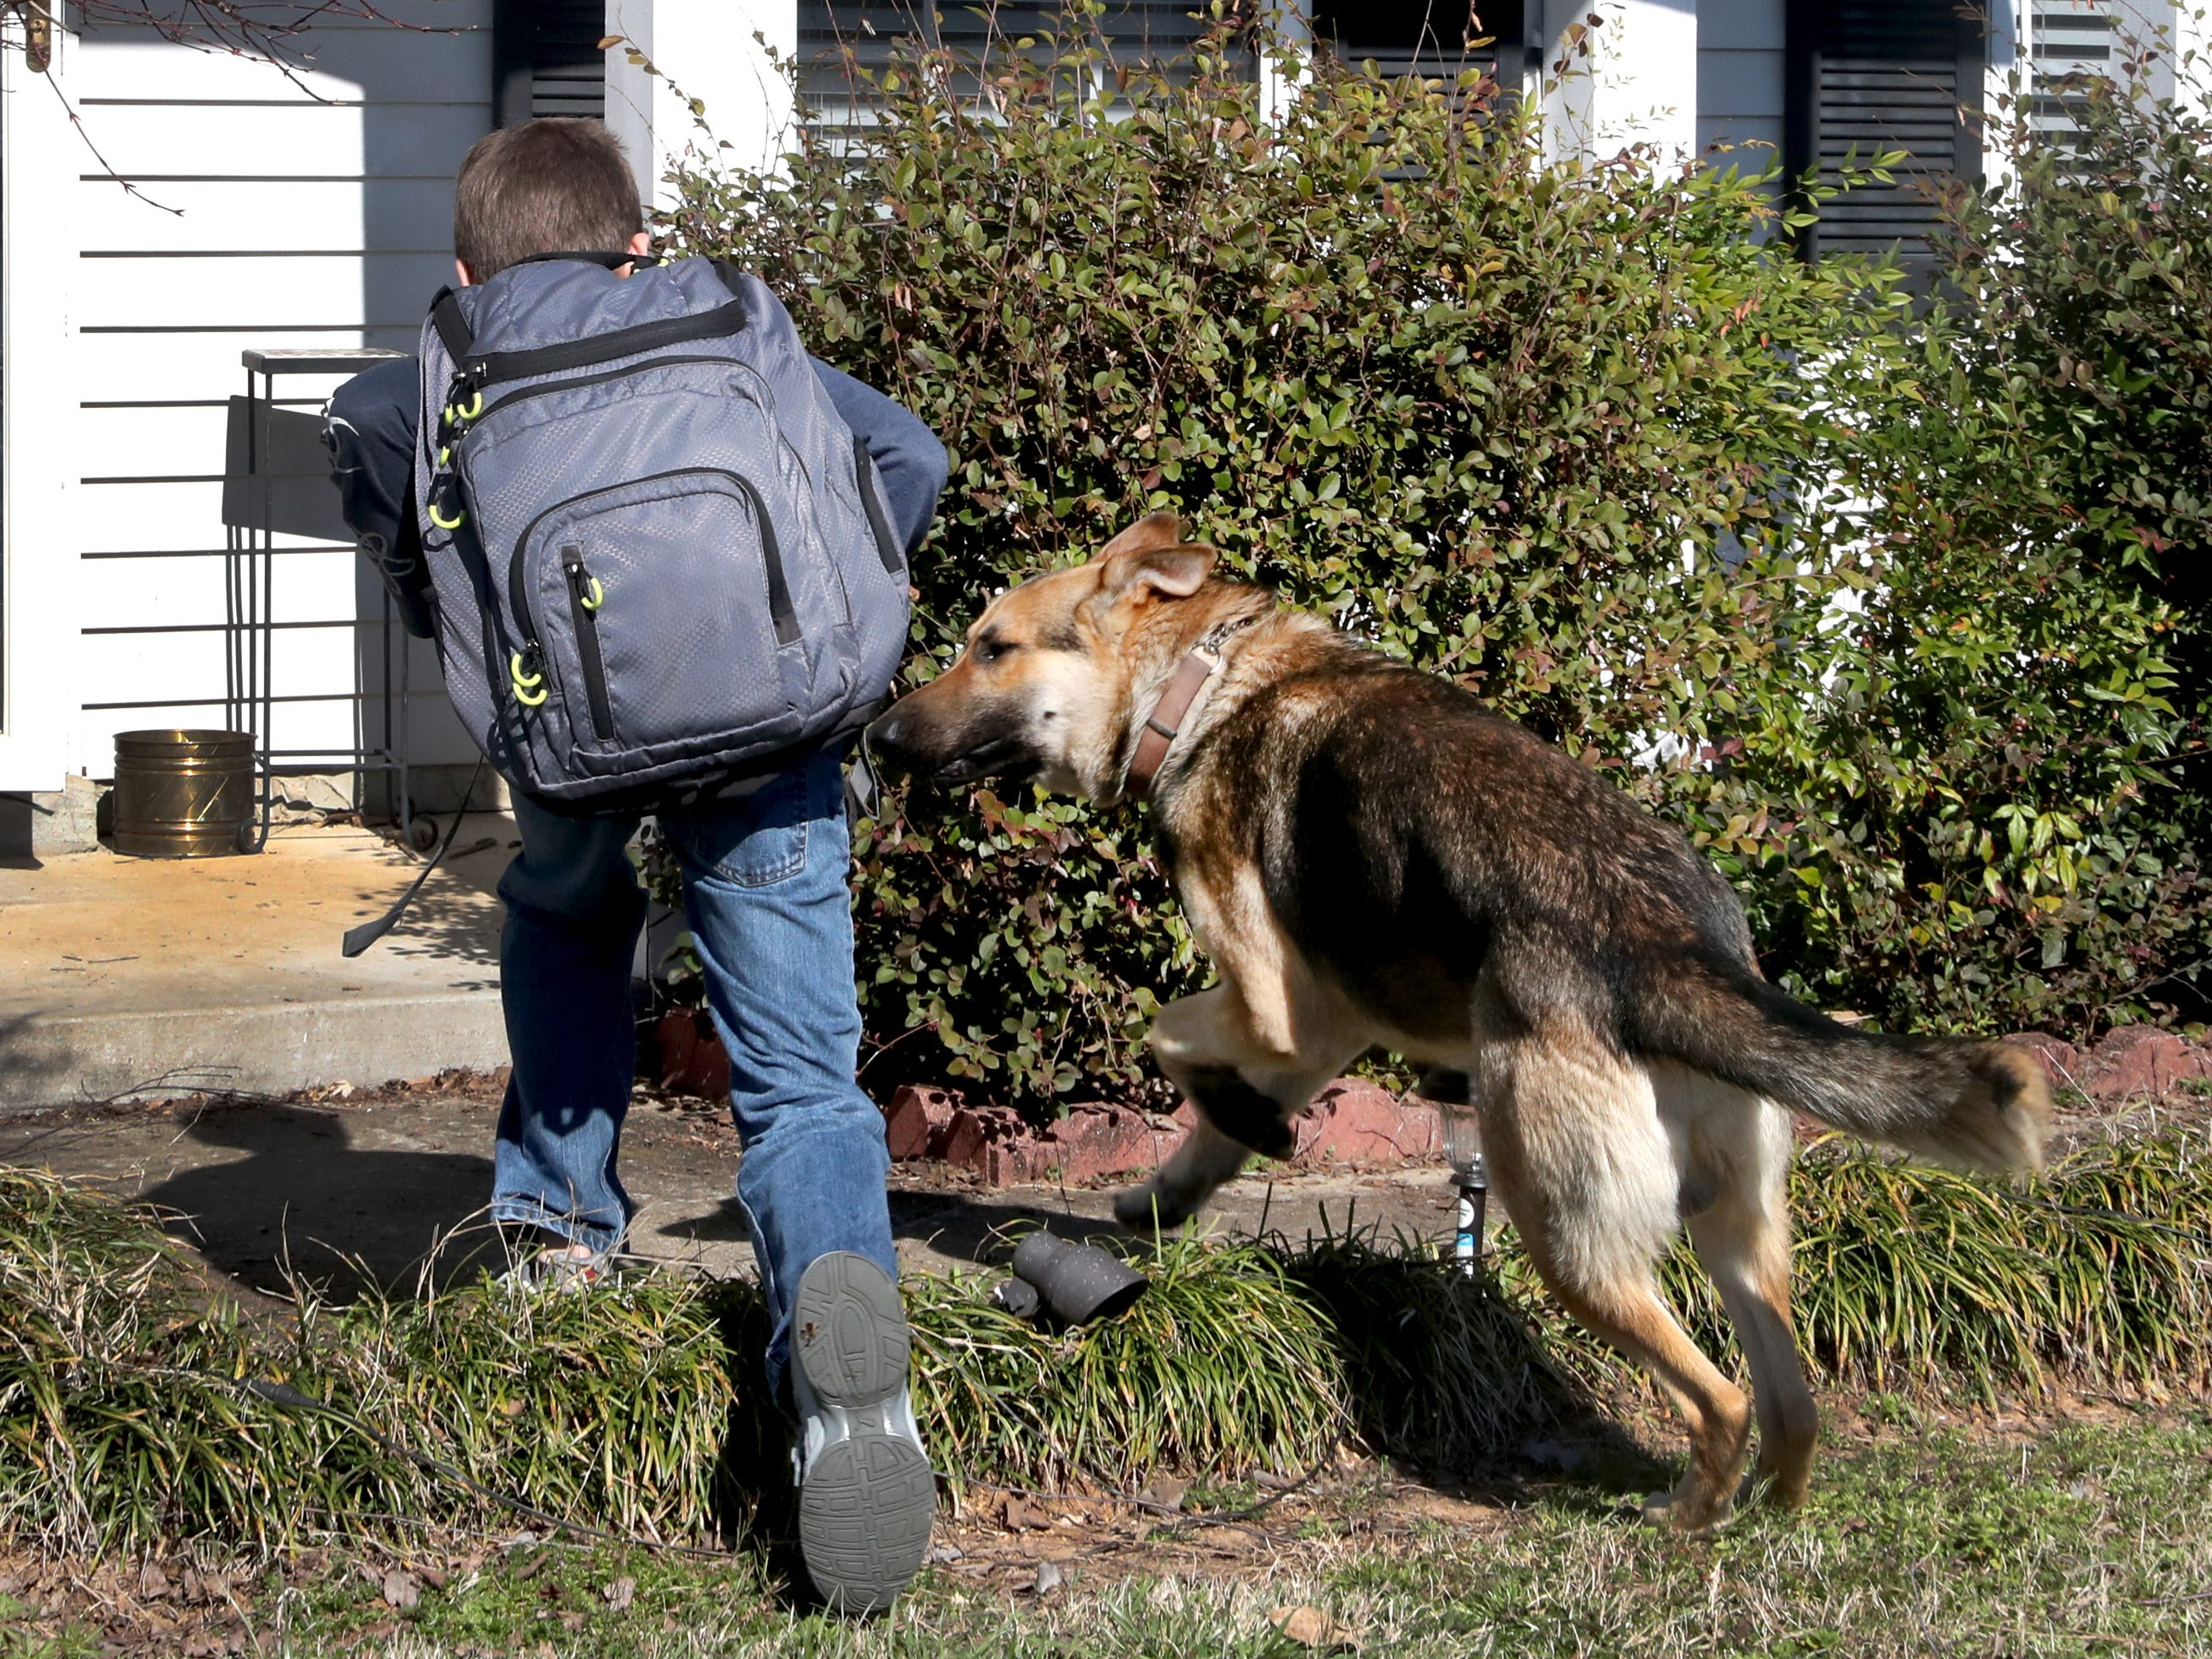 Justin White, 10, goes inside his home with his dog Goblin, on Tuesday, March 19, 2019, after Goblin greeted him after getting off the school bus.